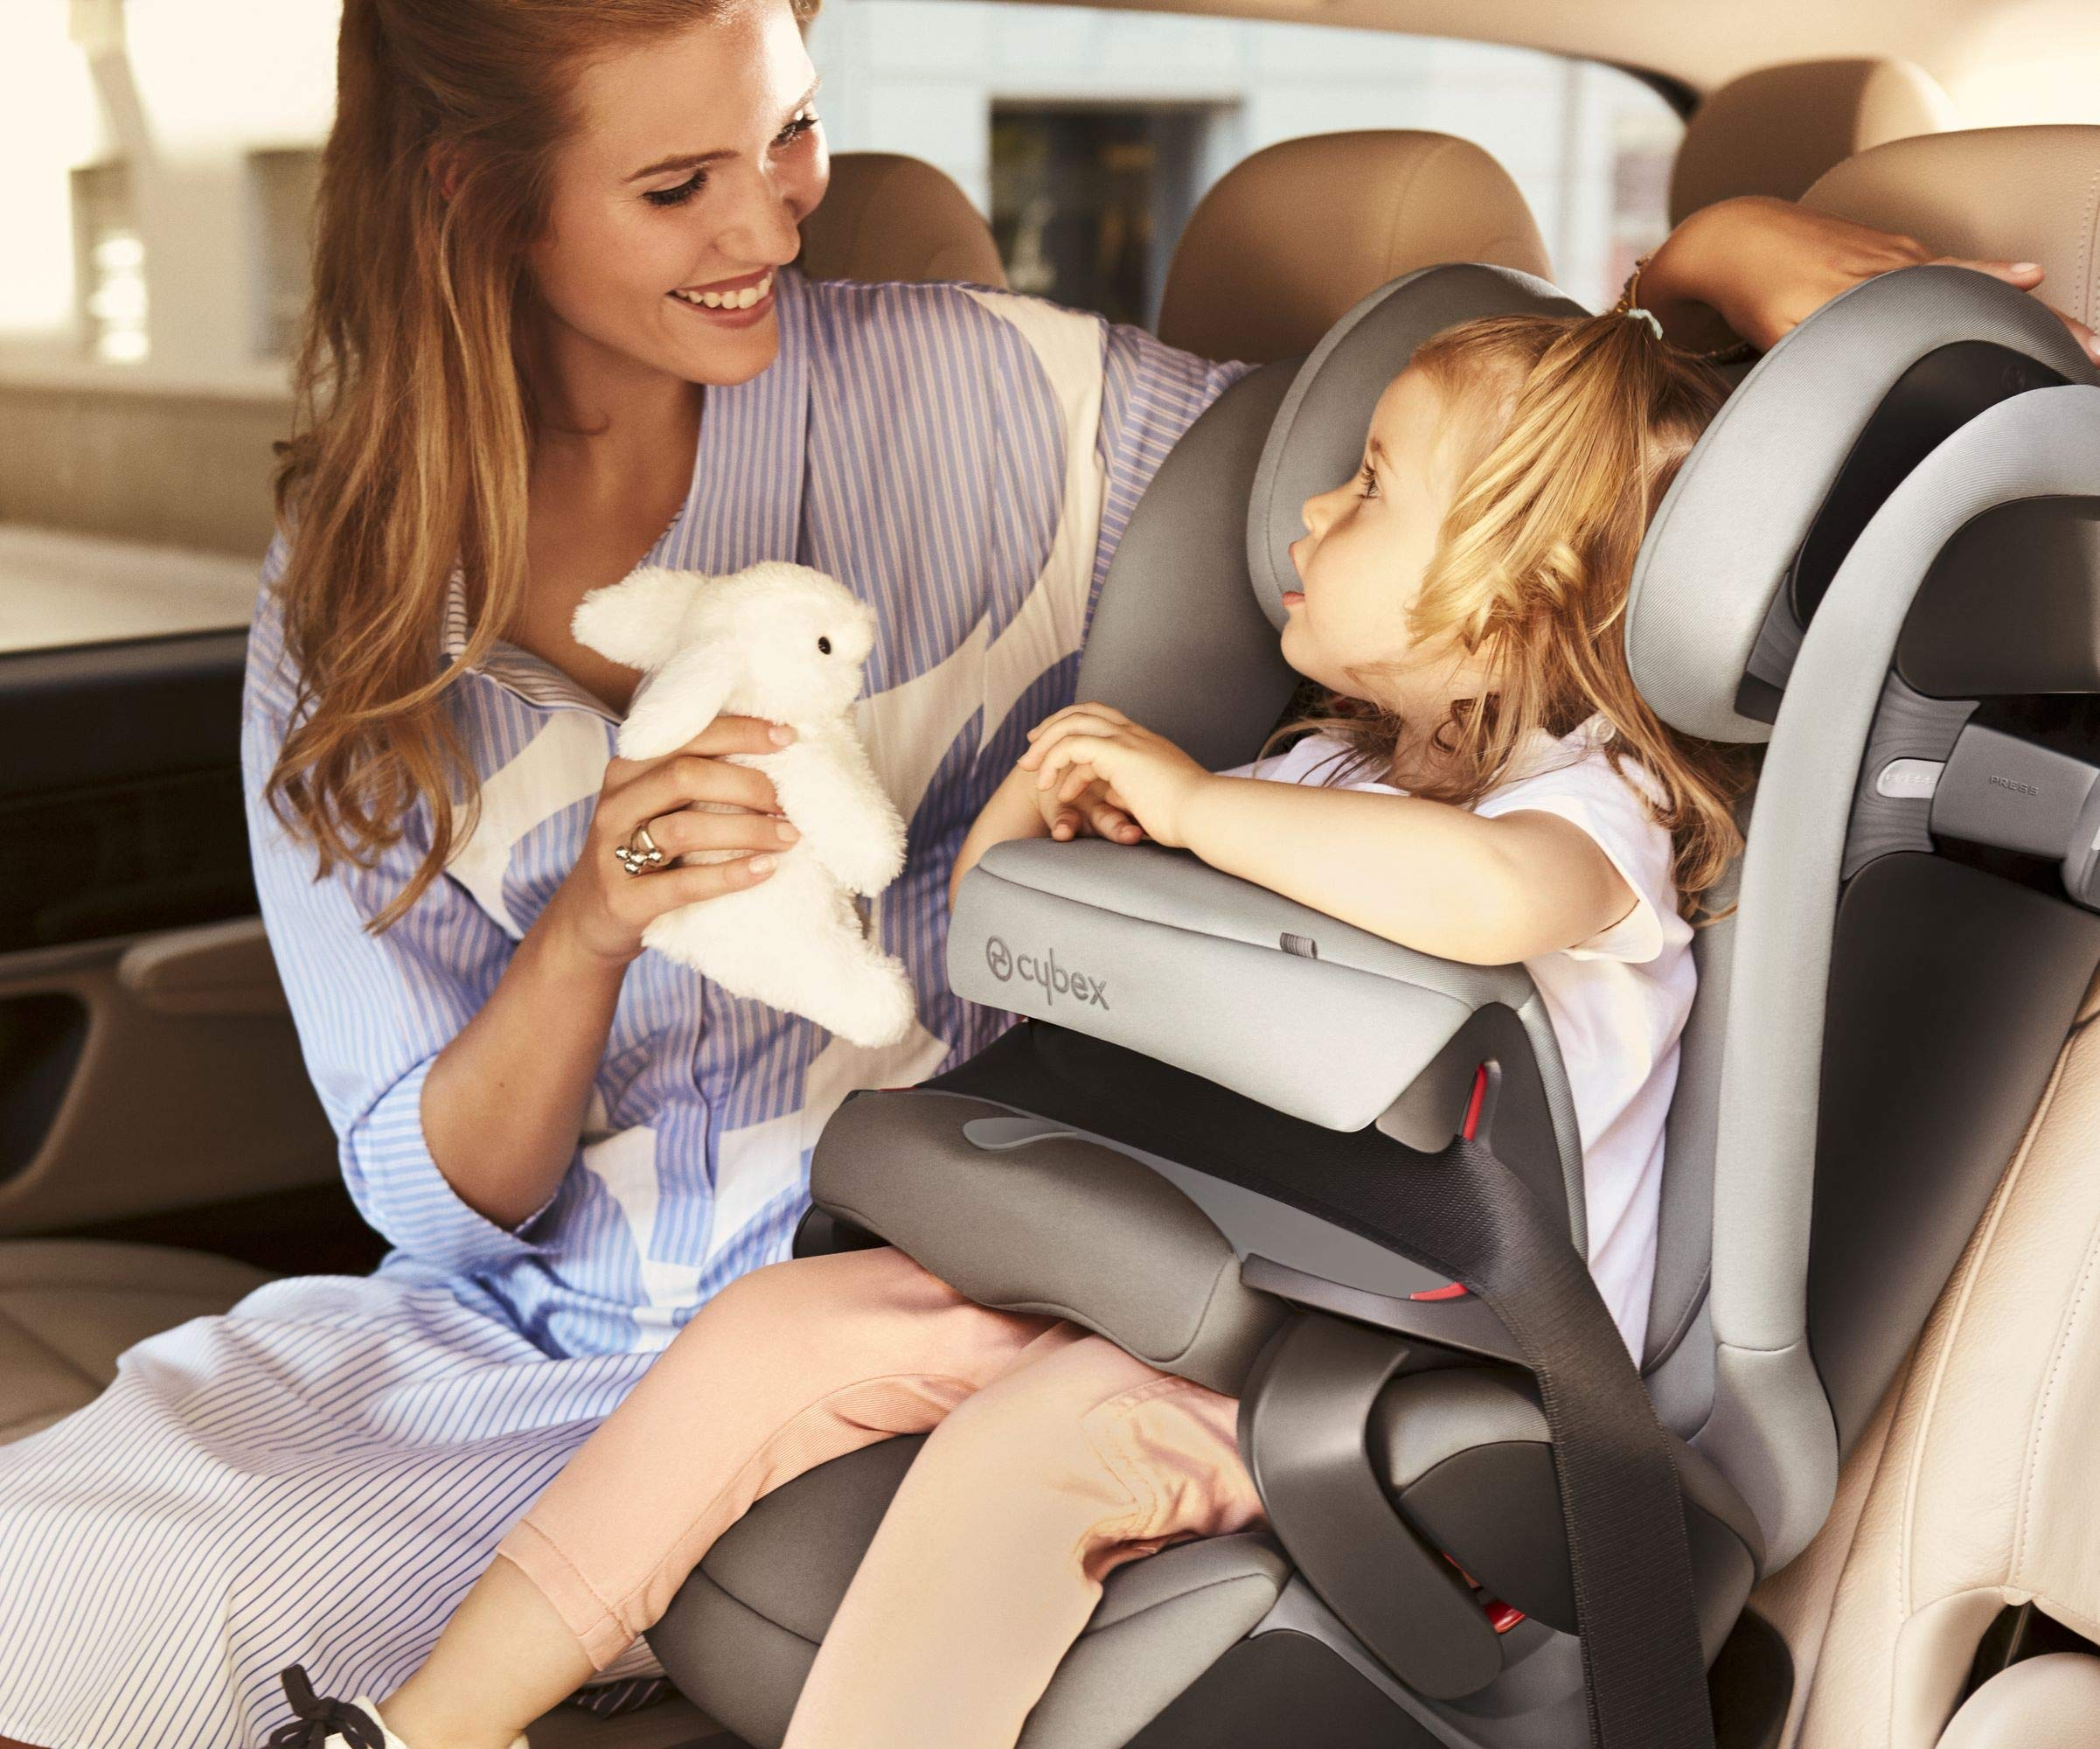 cybex Gold Pallas S-Fix Car Seat, Group 1/2/3, Manhattan Grey  Group 1/2/3 combination car seat. suitable from 9 - 36kg. designed to be used until a maximum height of 150cm, approximately 12 years. The optimized impact shield of the pallas s-fix reduces the risk of serious neck injuries without confining the child. shield suitable until 18kg. The integrated lisp. system offers increased safety in the event of a side-impact collision by reducing the forces by approximately 25%. 13